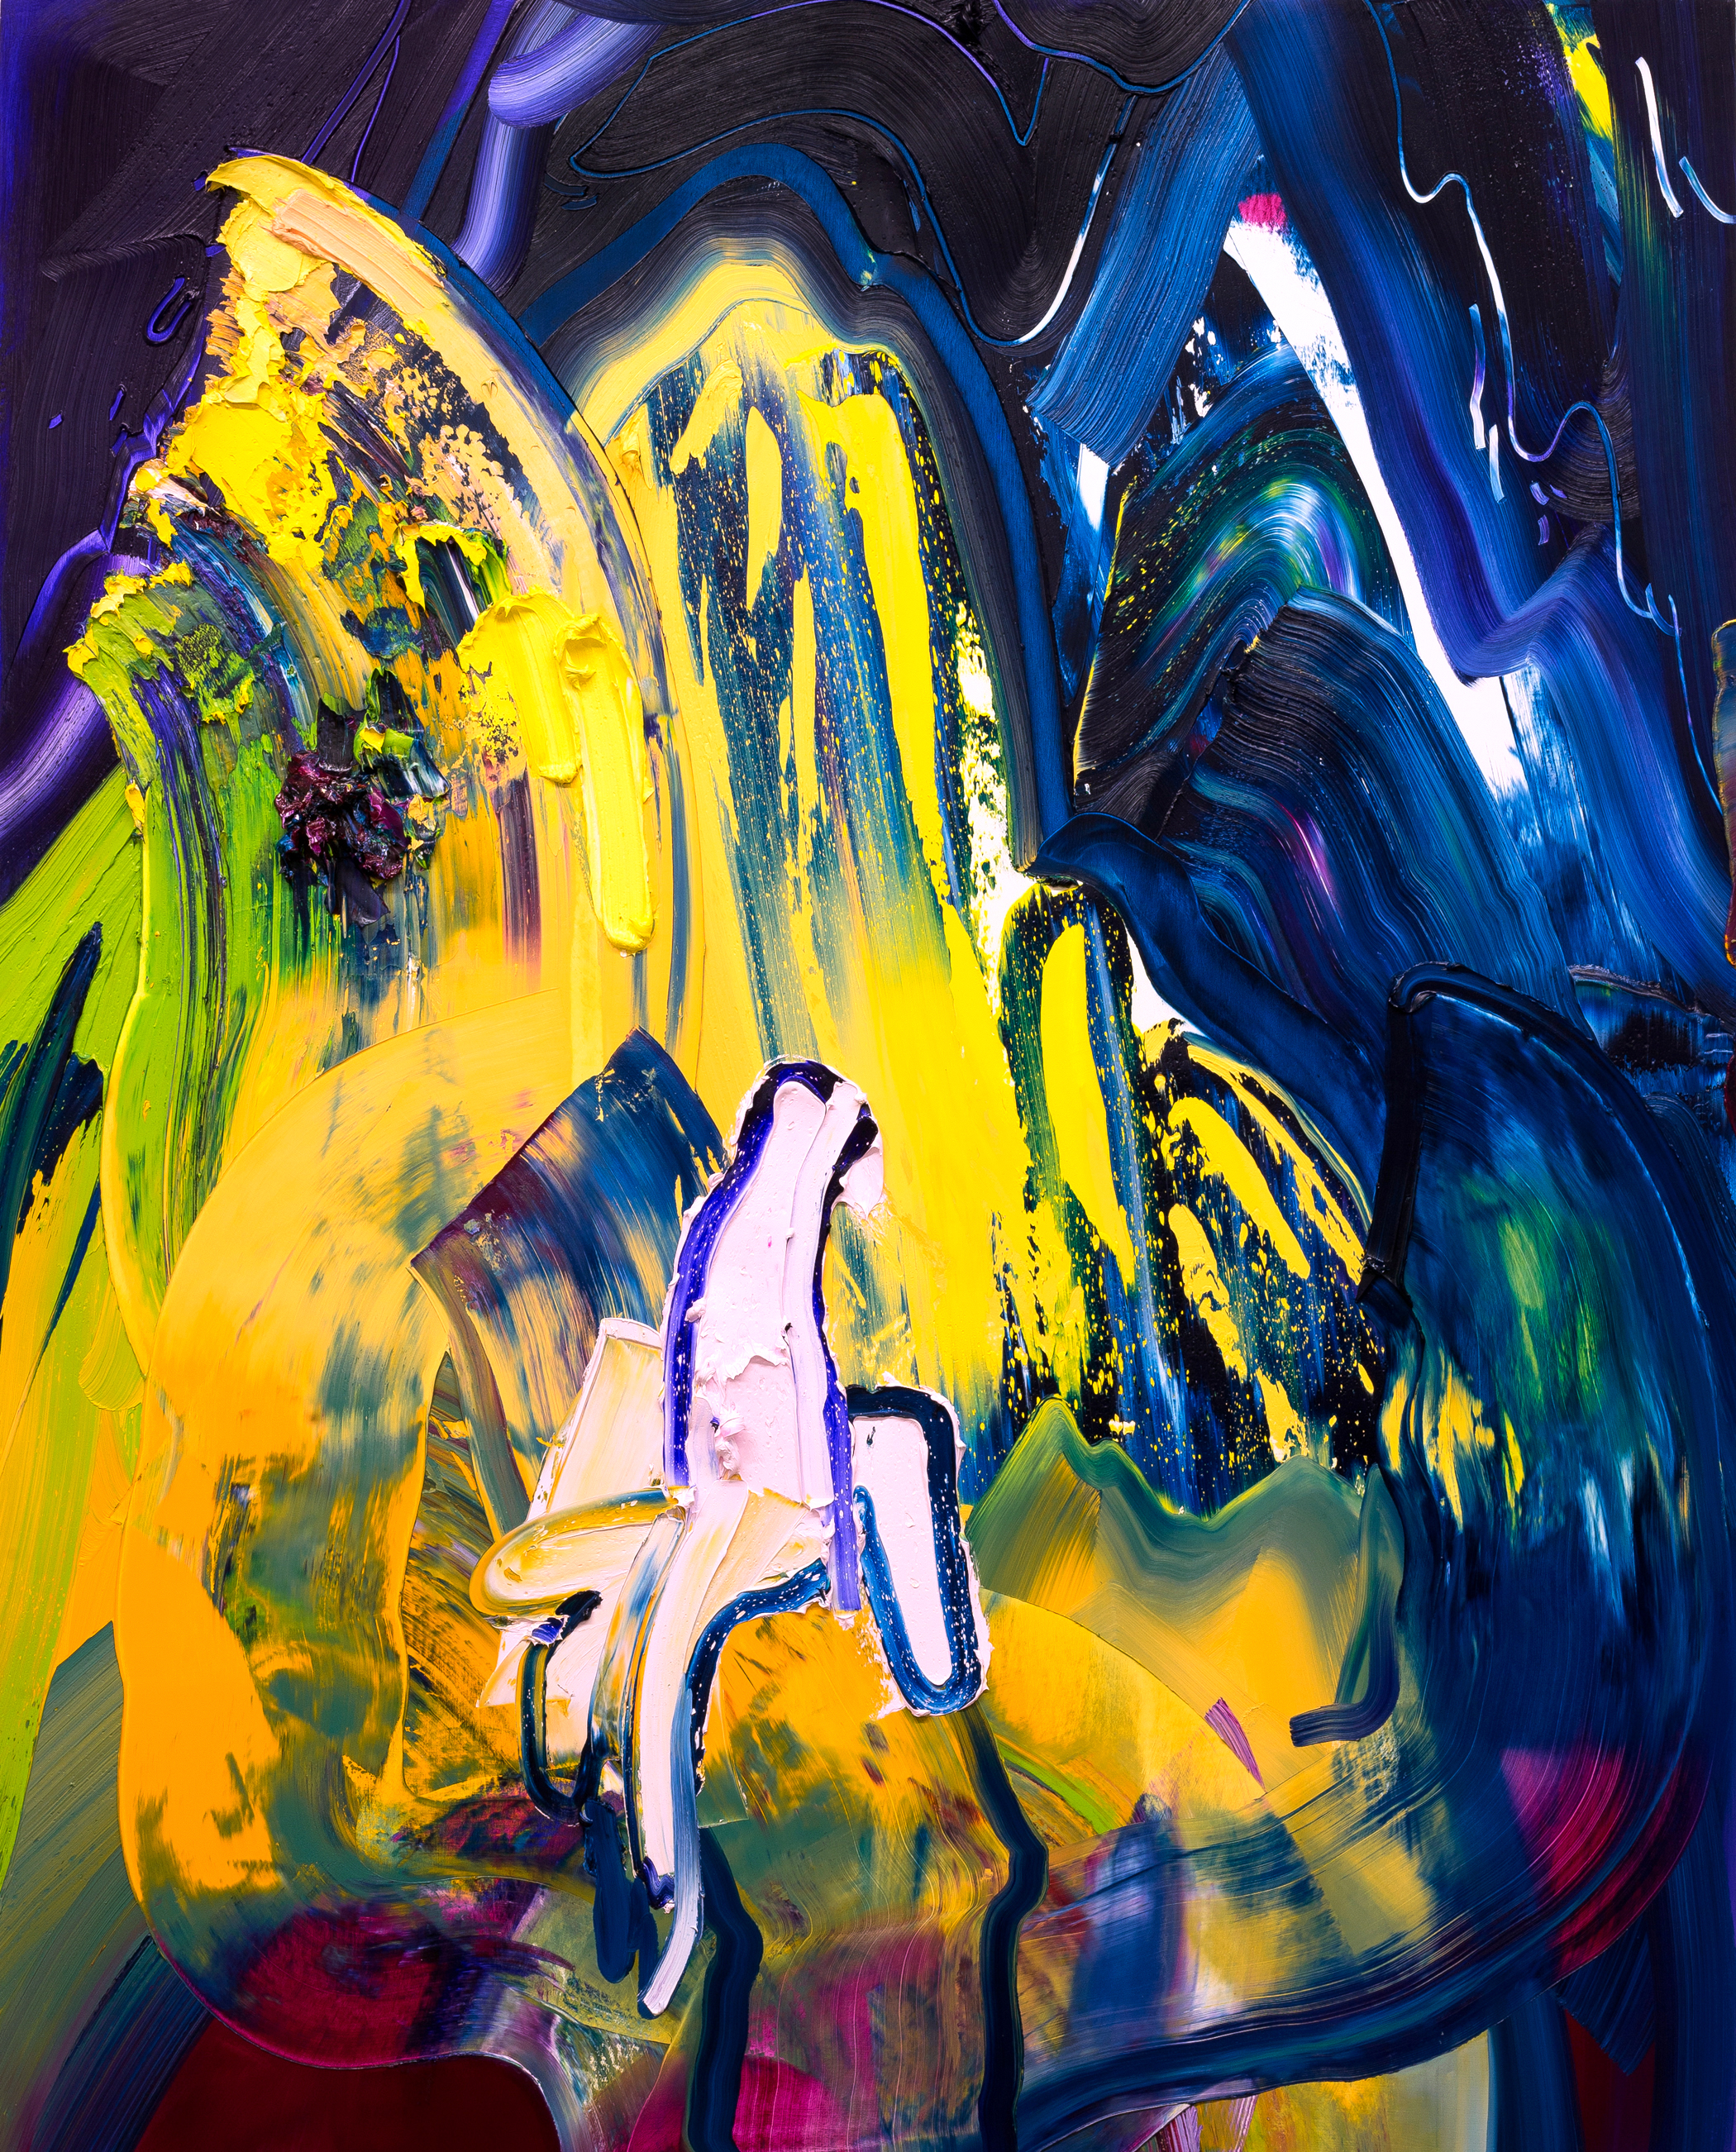 Genie / oil on canvas / 60 x 48 inches